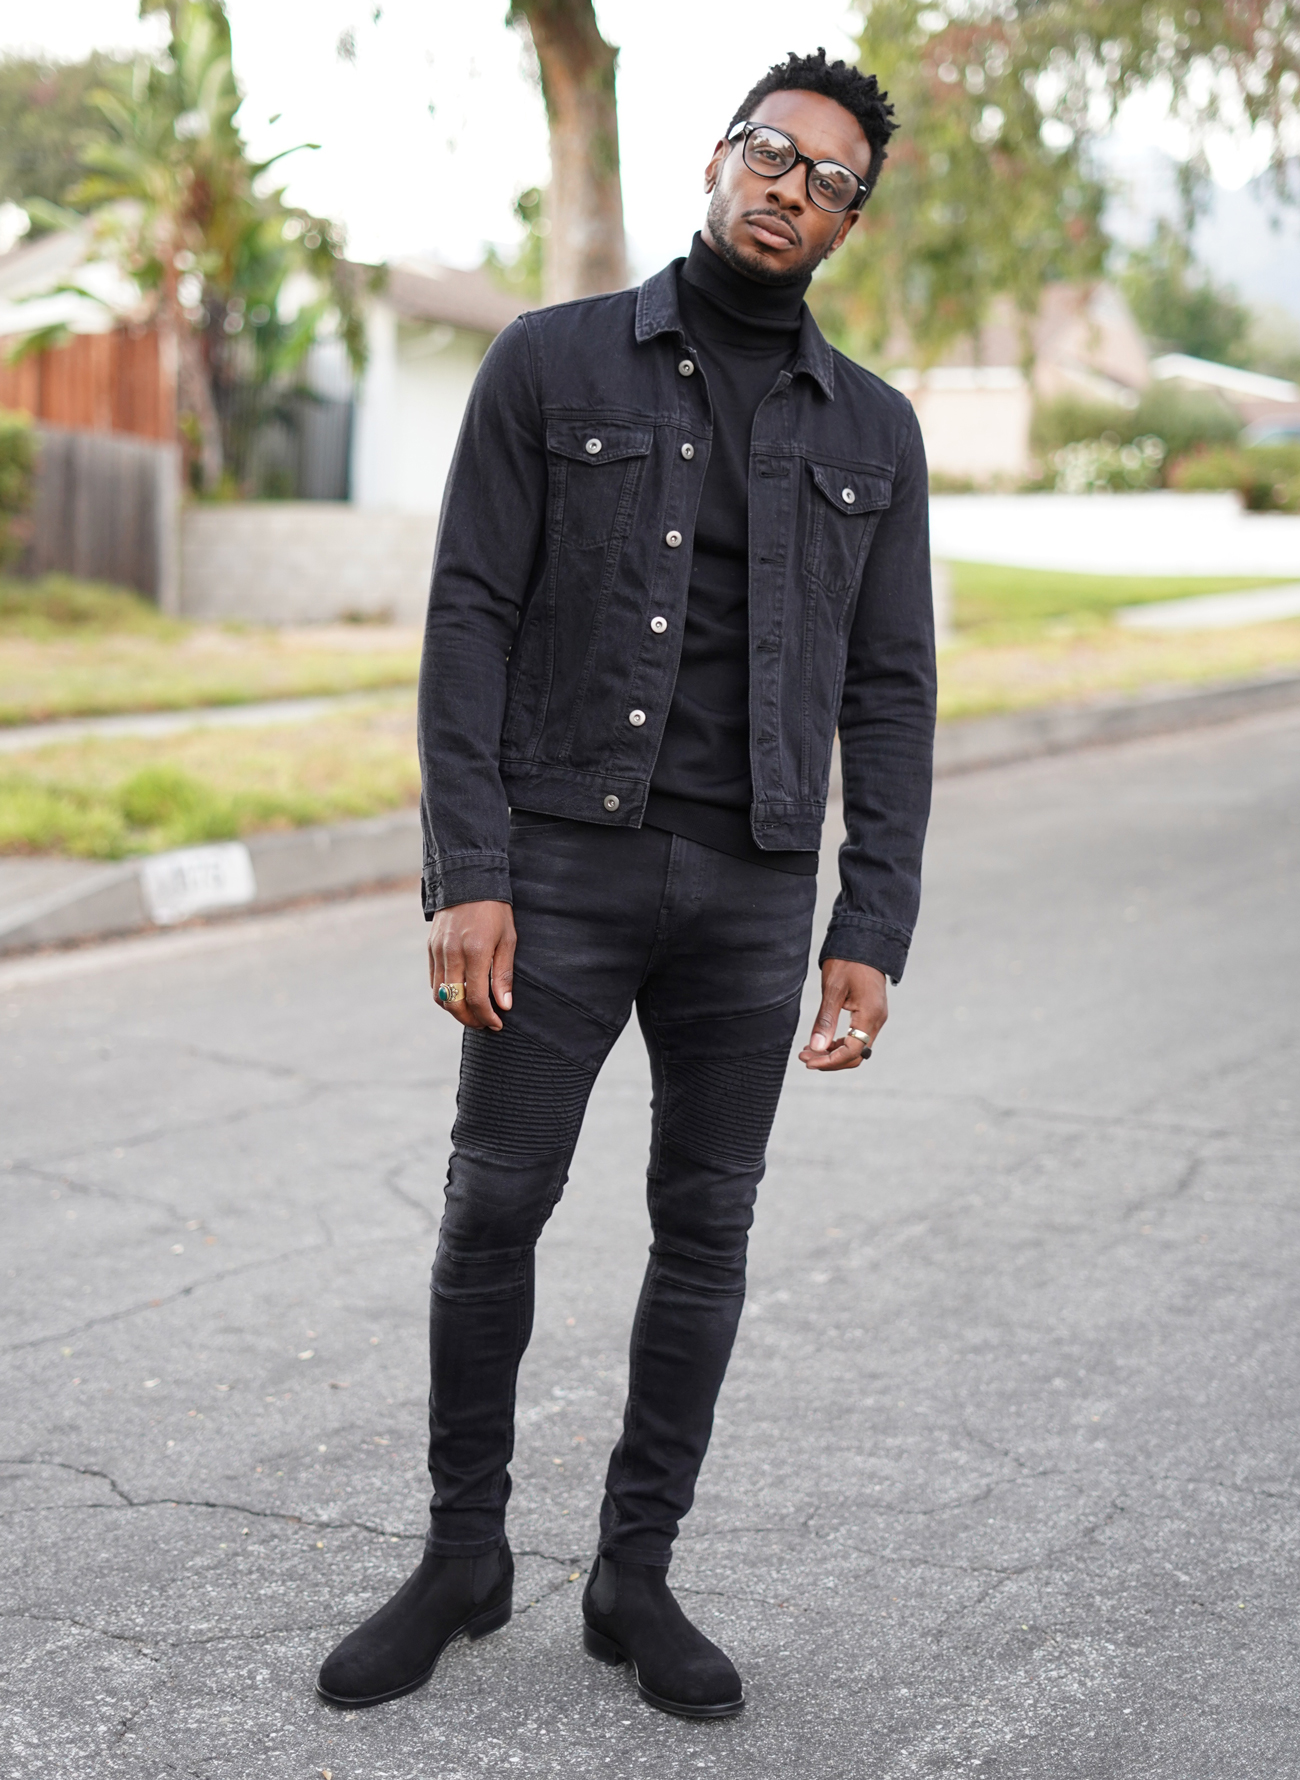 Ootd All Black Fall Look W Chic Street Style Vibe Norris Danta Ford